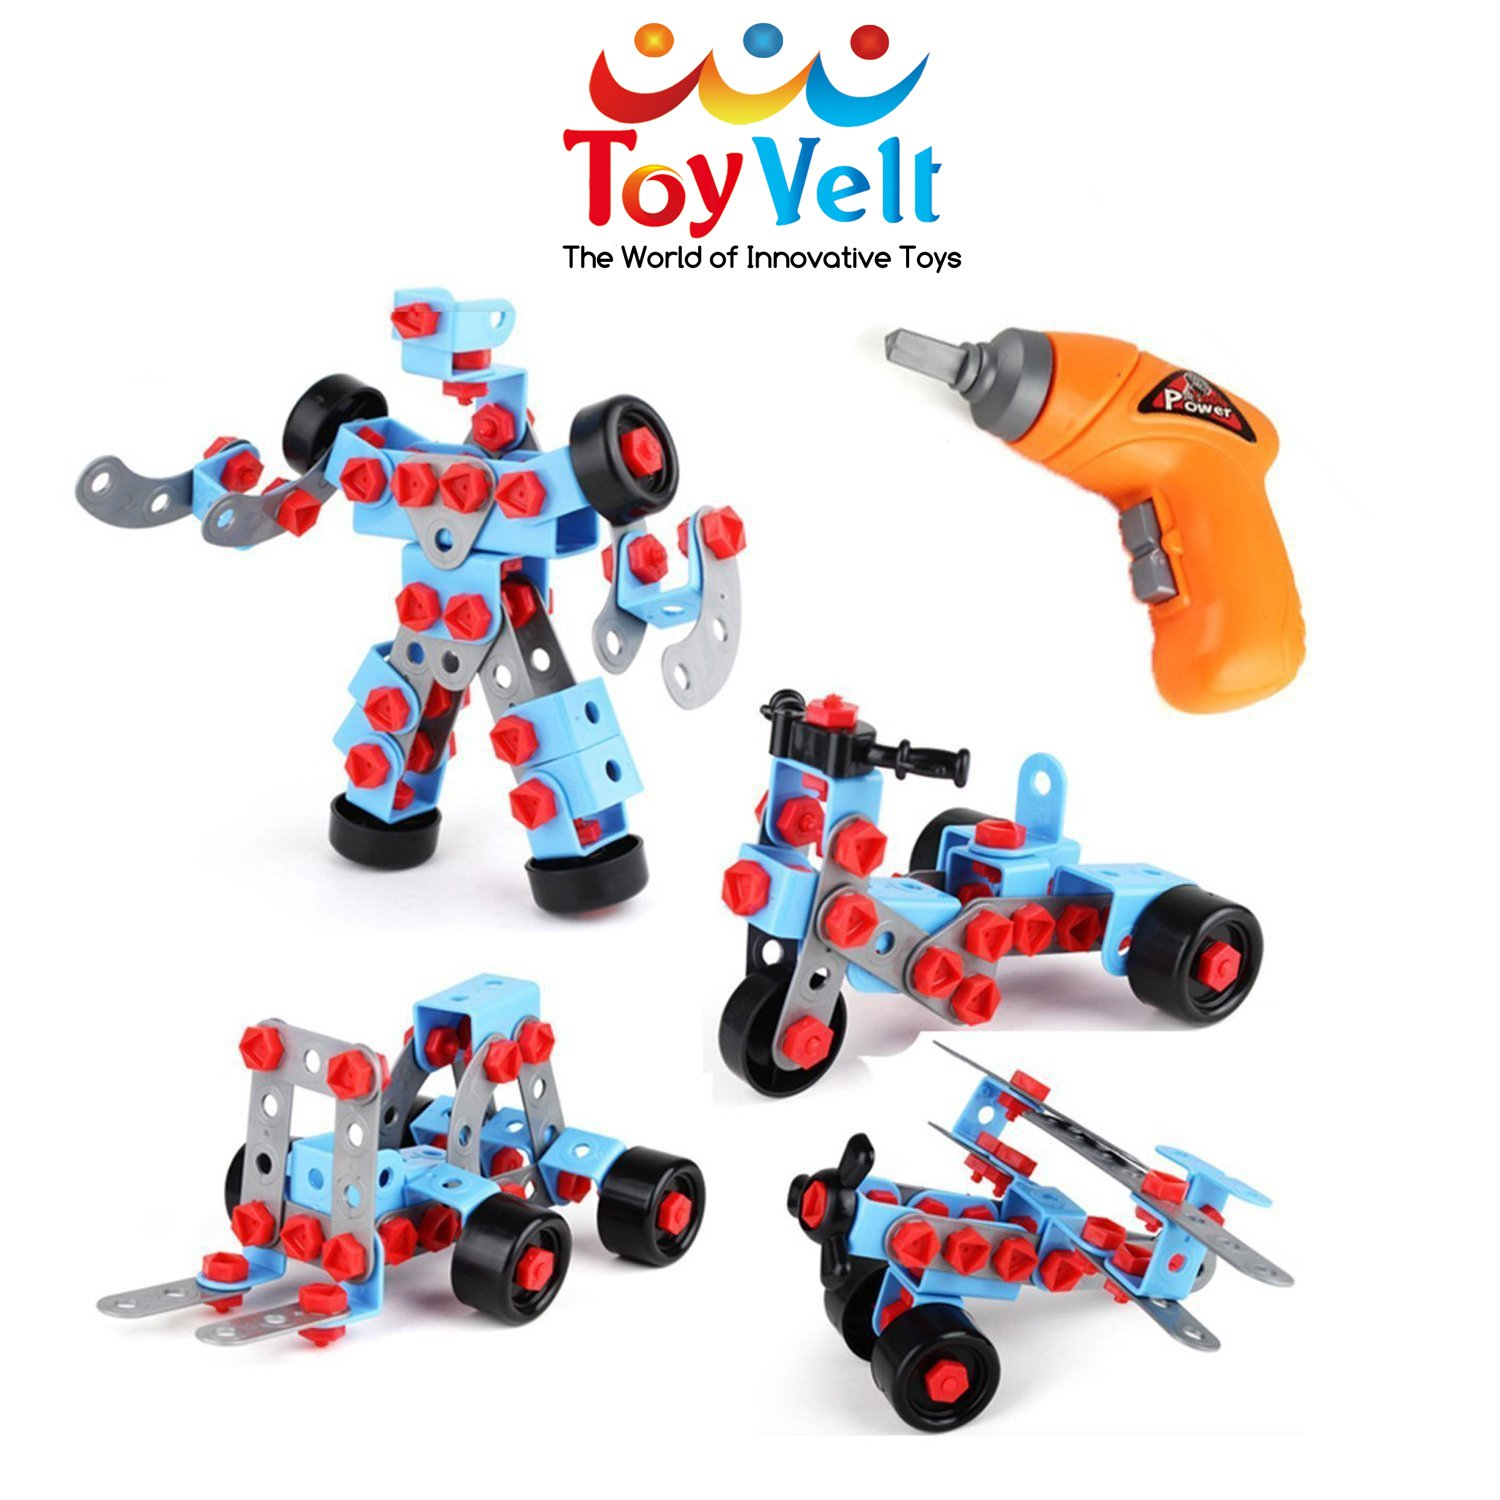 Educational Take apart Kids Toys - Stem Learning Construction Tool Engineering Electric TOY DRILL- Building Blocks Set Toys For Boys and Girls- AGES 3 - 12 yrs old Great GIFT for Kids Review